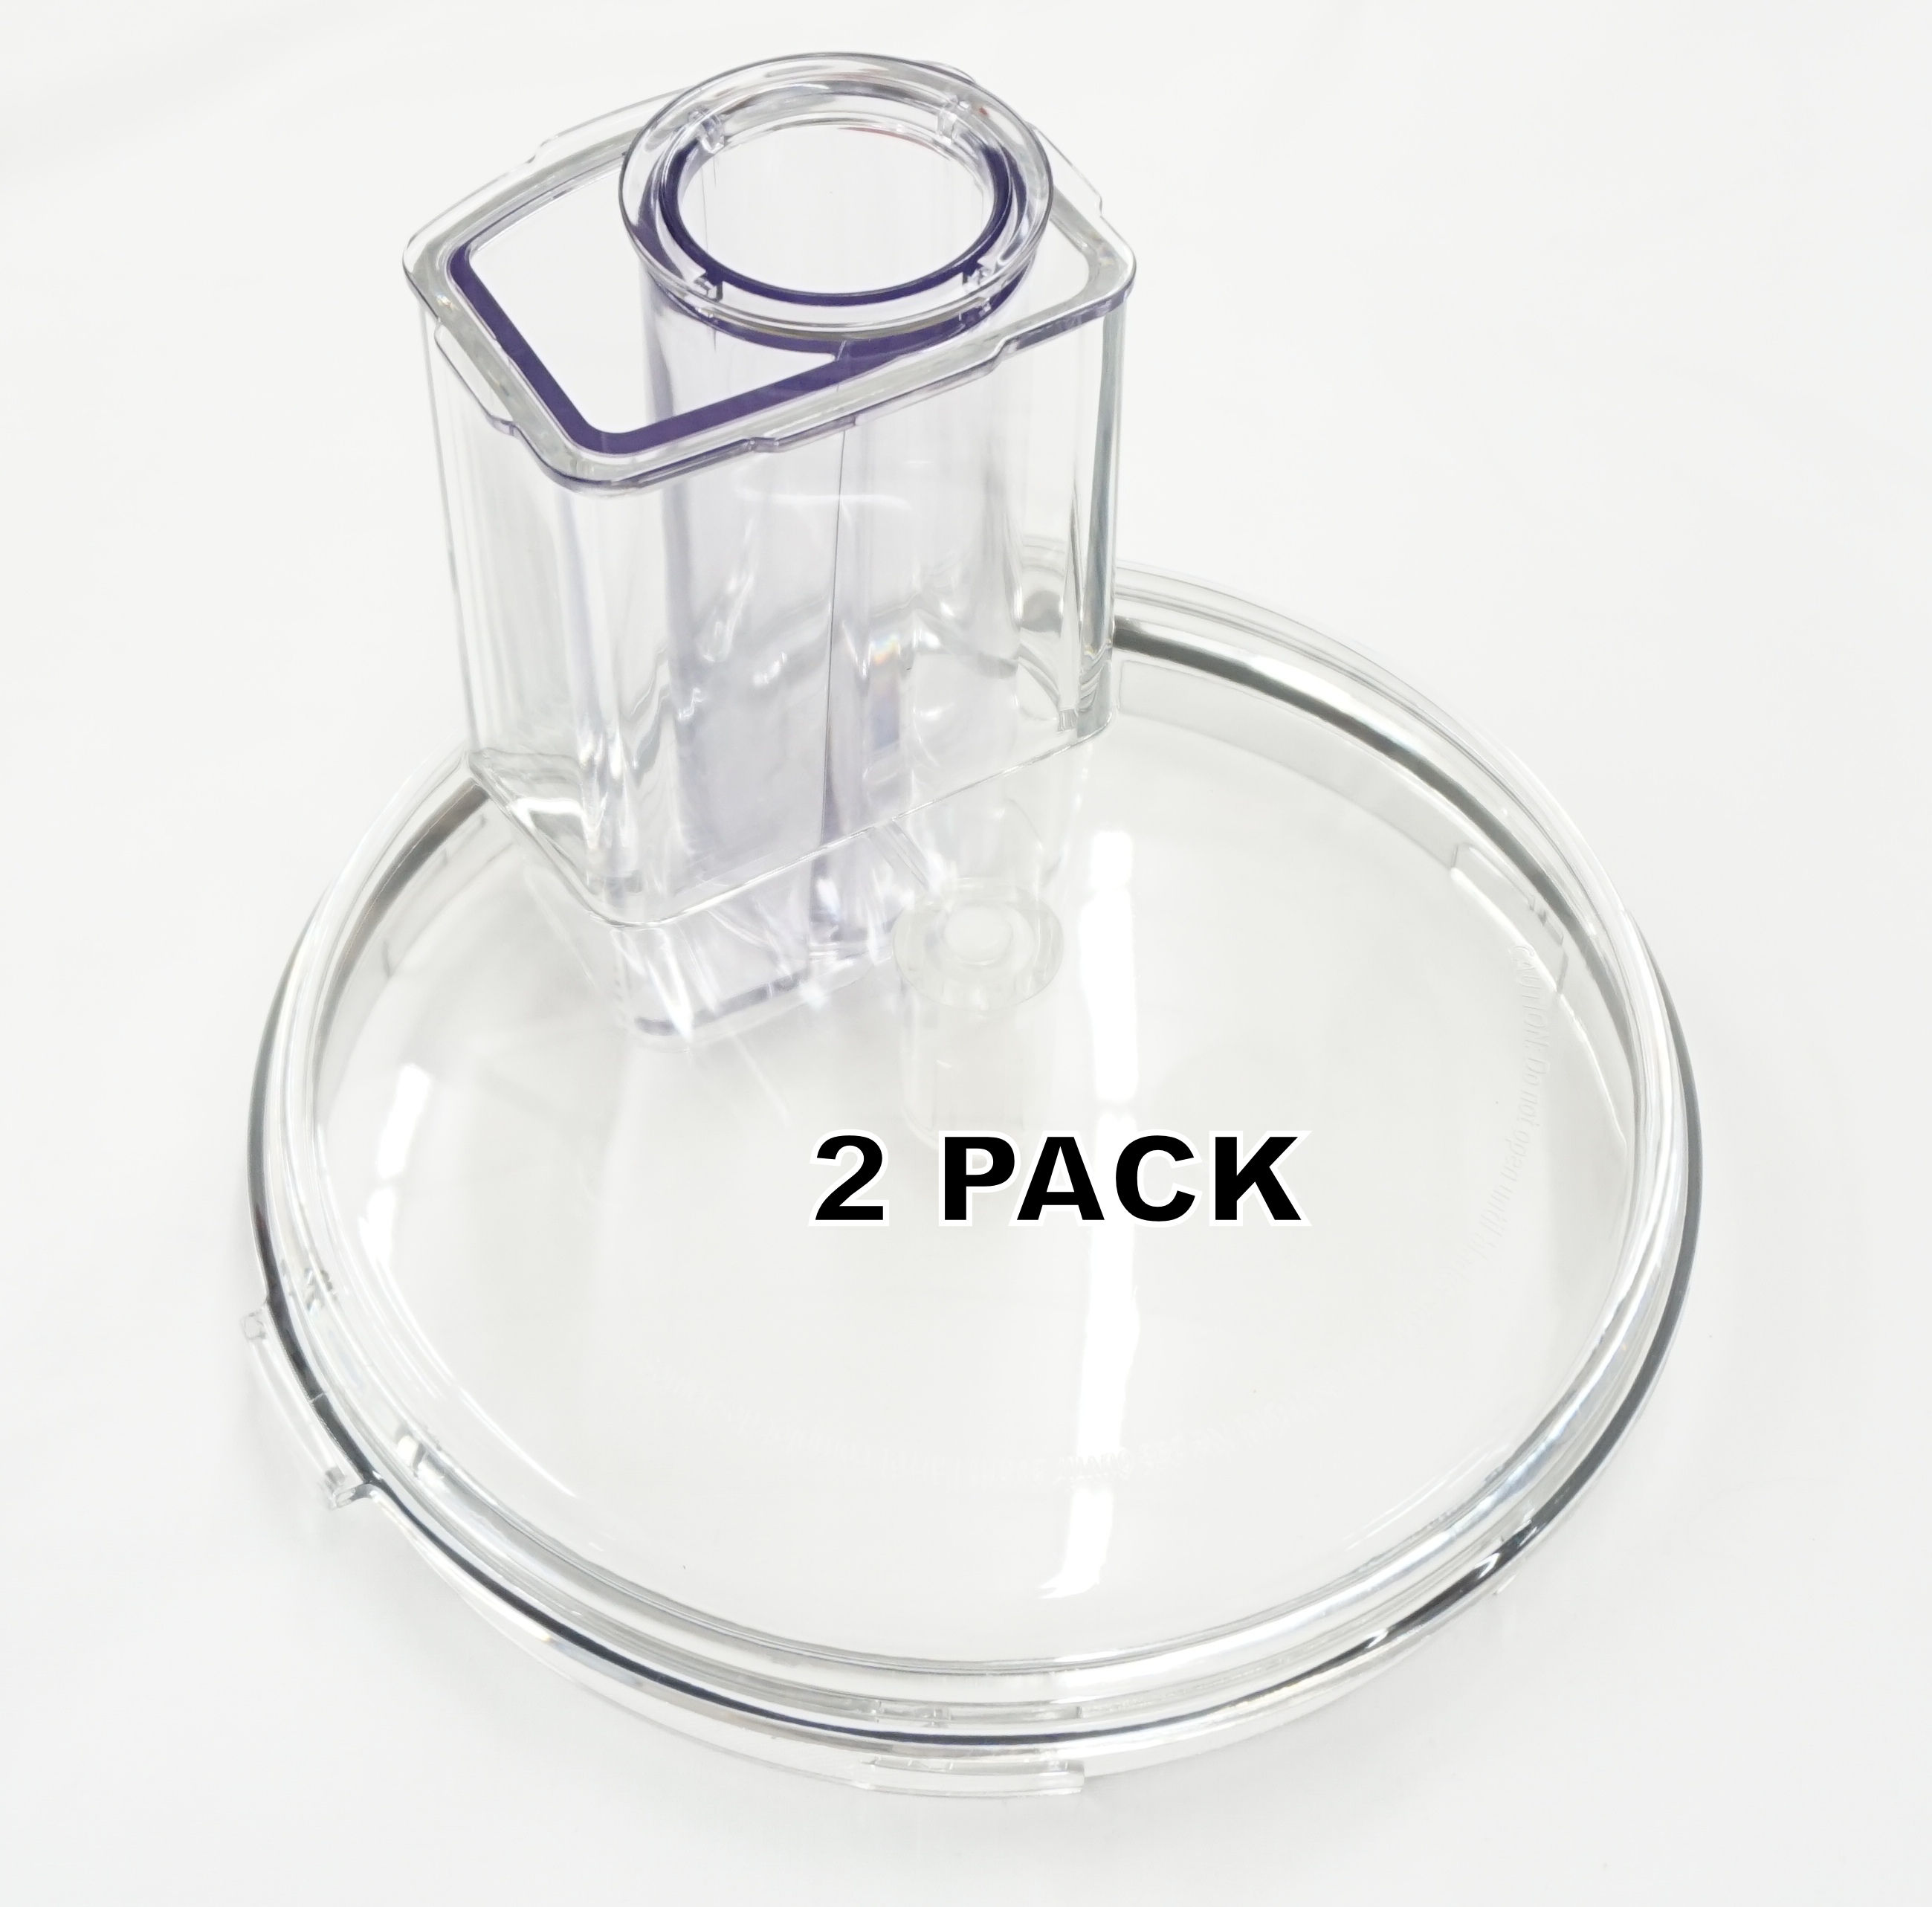 2 Pk, 7-Cup Food Processor Bowl Cover for KitchenAid, AP5806262, W10674952